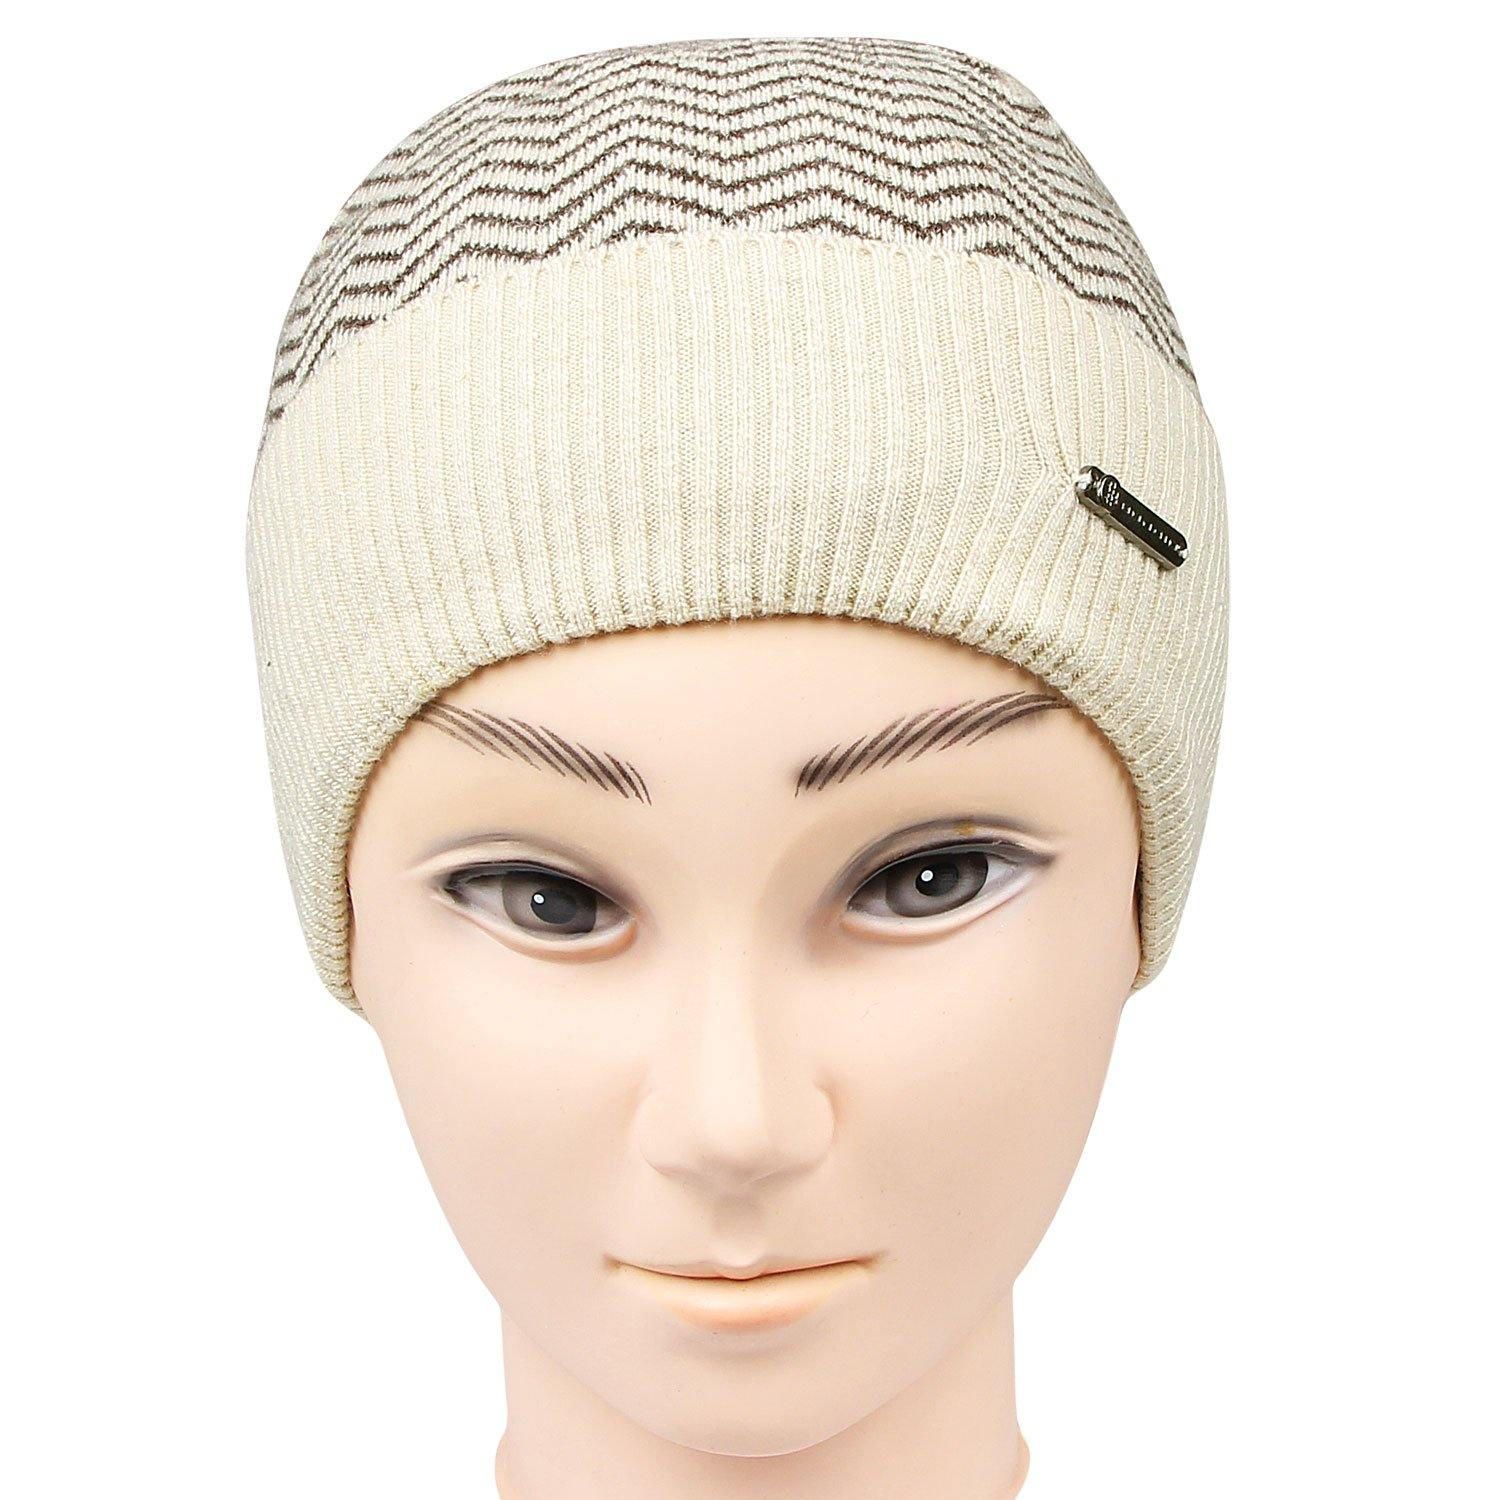 Men's Knitted Cap For Winters - Coffee